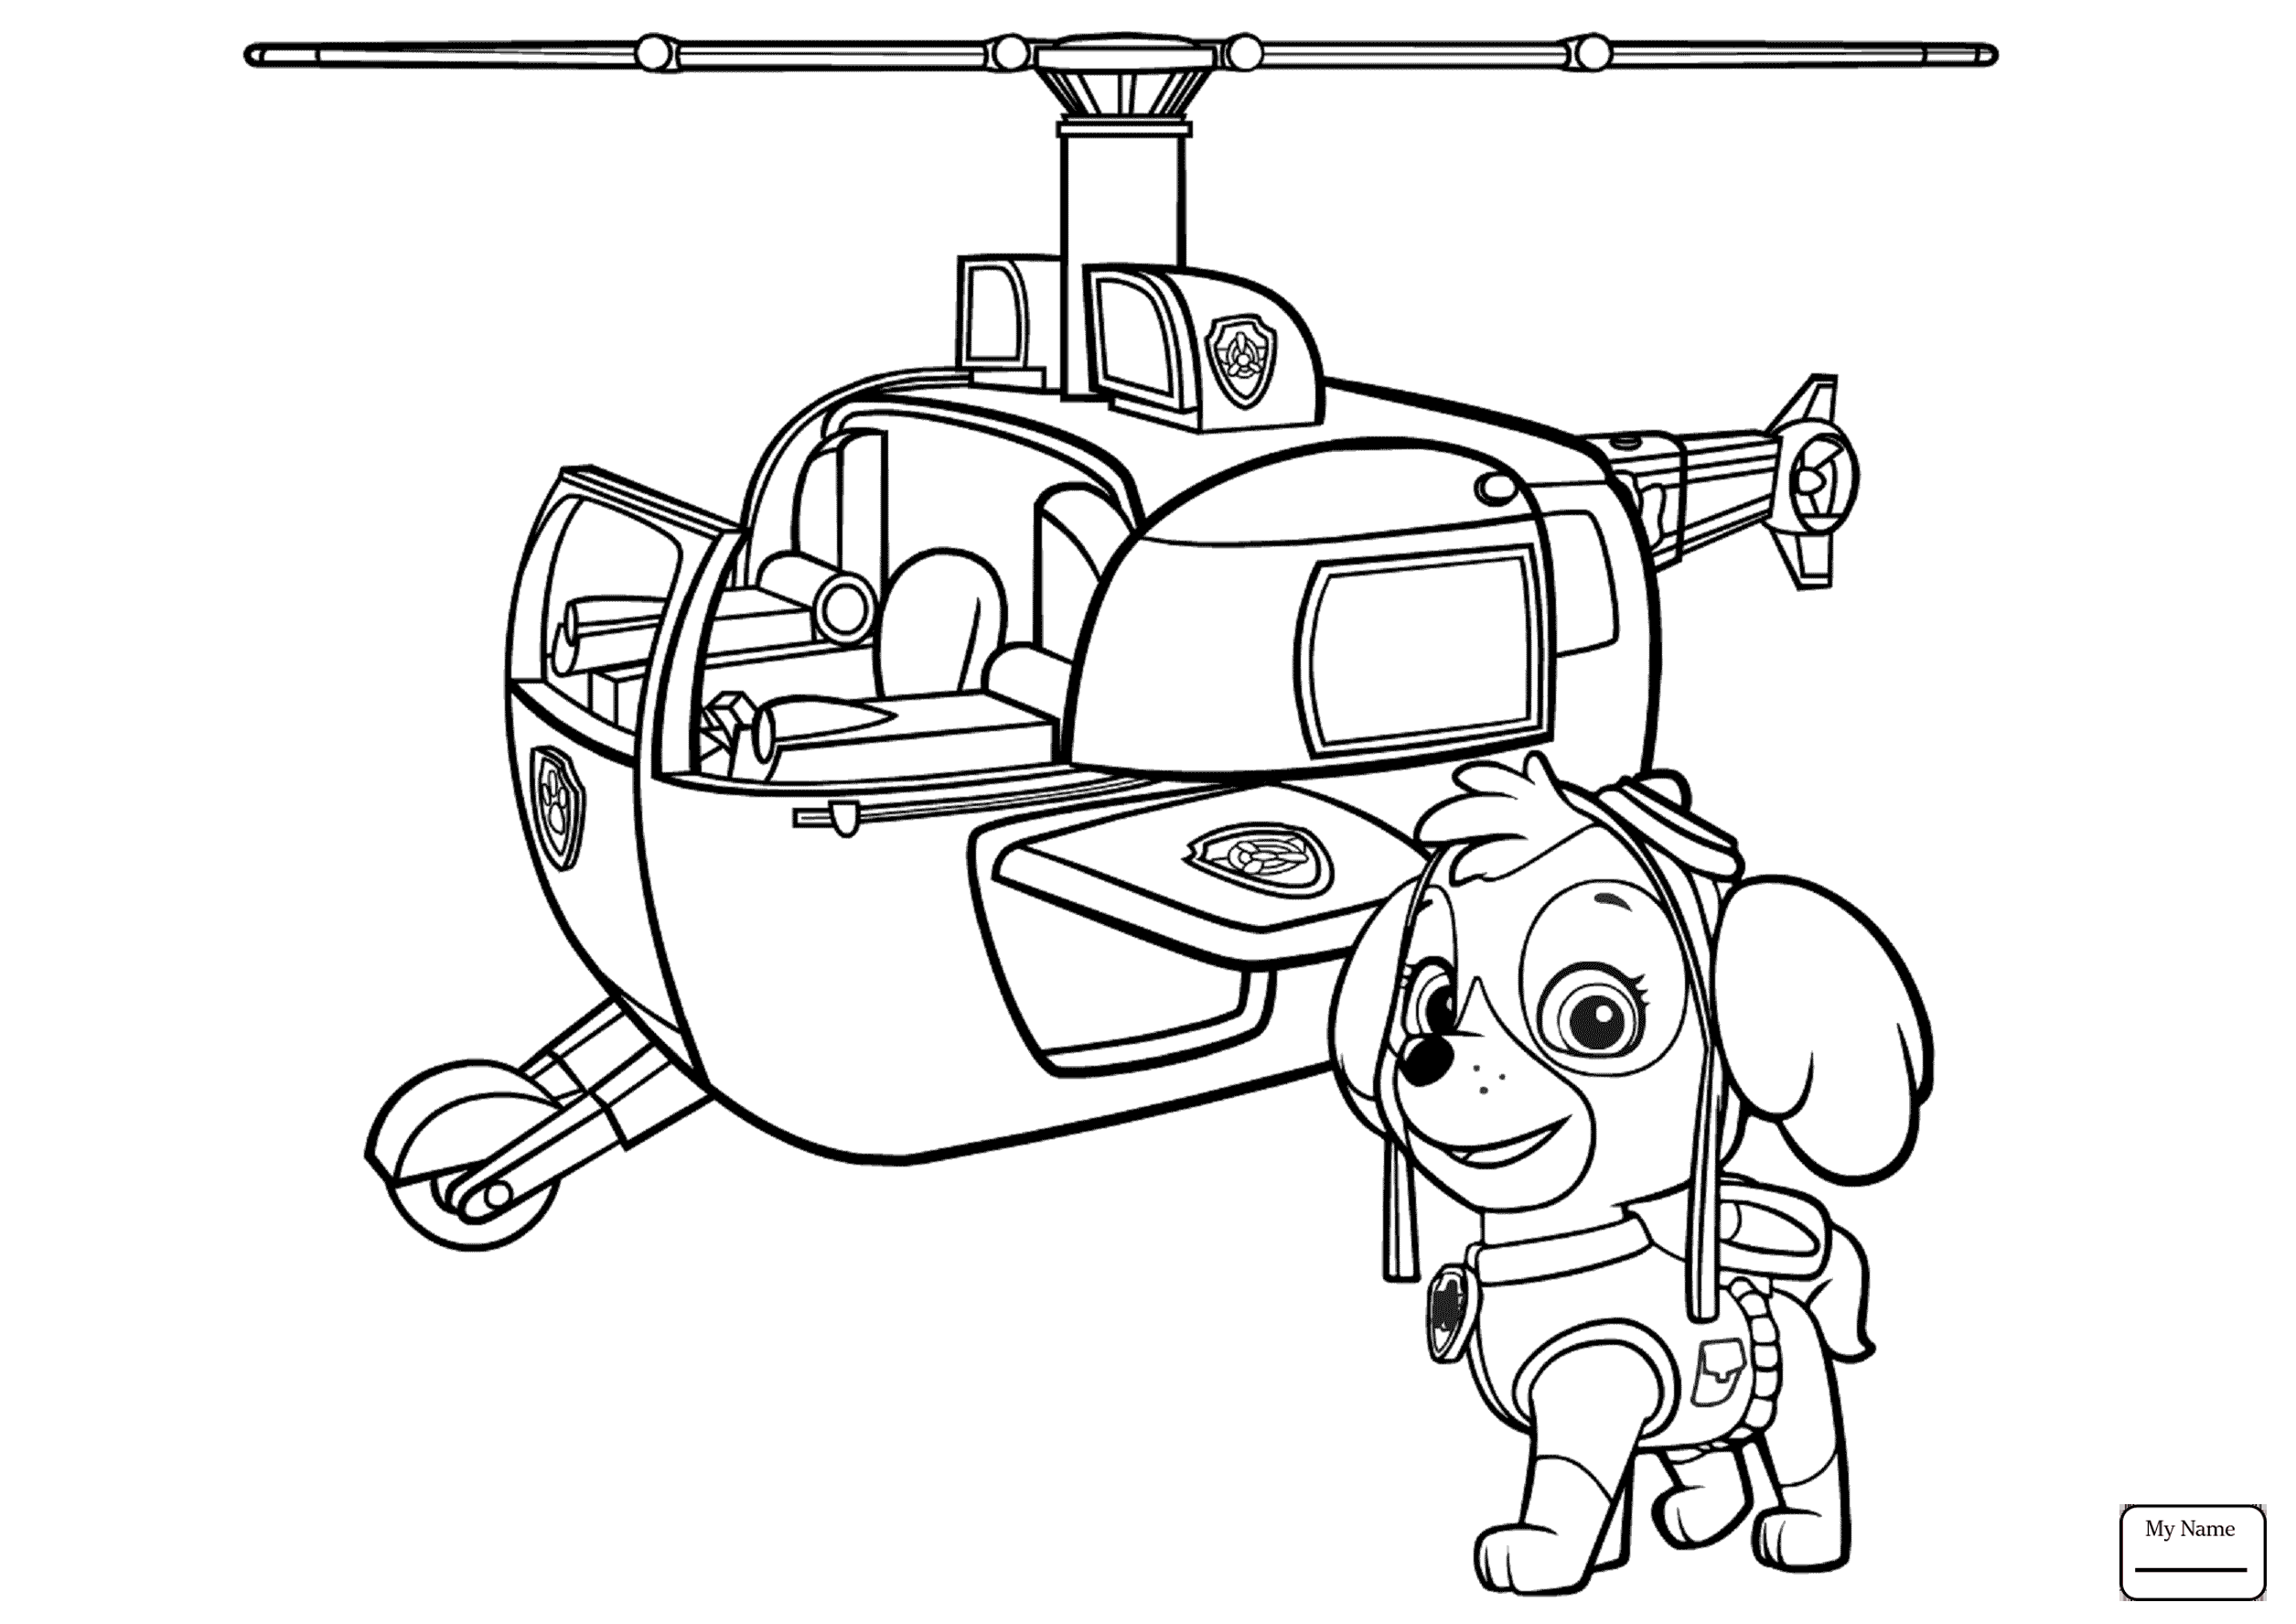 paw patrol coloring pages everest badge paw patrol coloring pages getcoloringpagescom pages coloring patrol everest paw badge